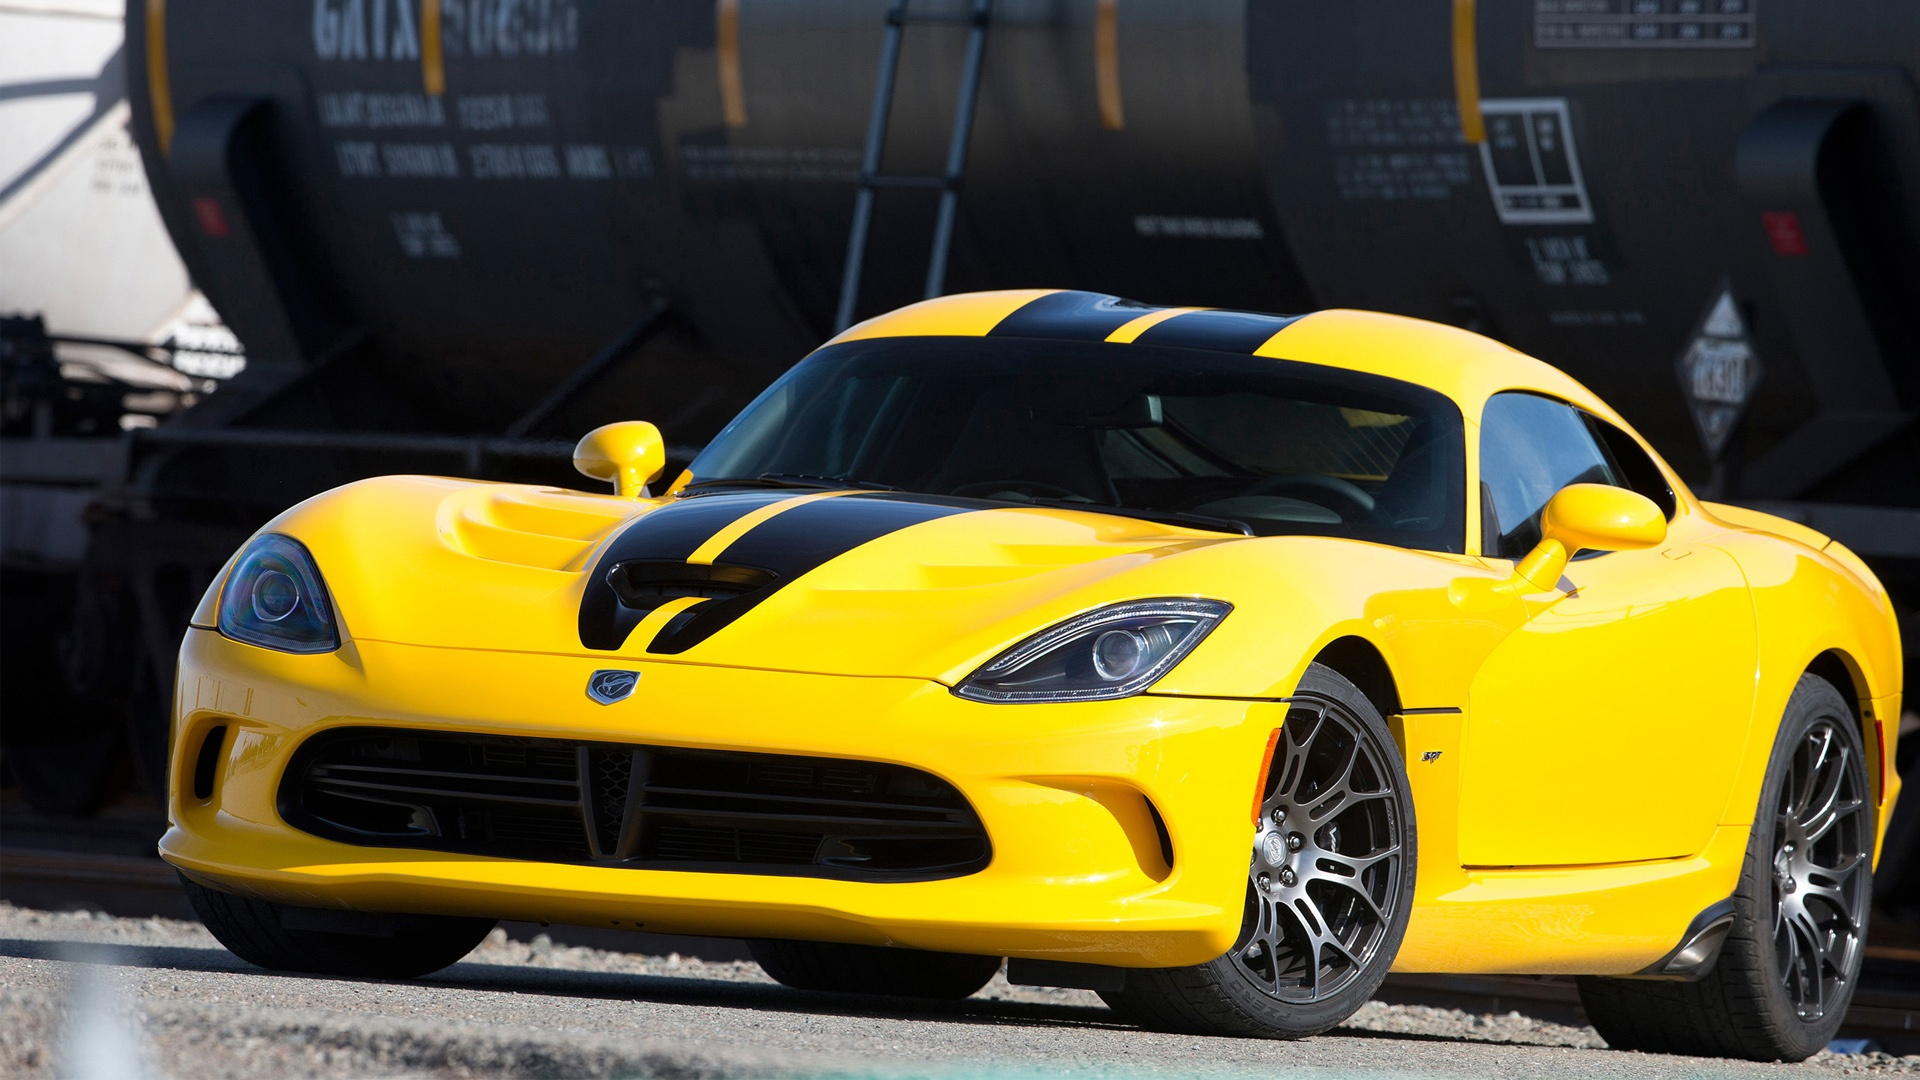 2013 SRT Viper Race Car Wallpaper HD Car Wallpapers 1920x1080